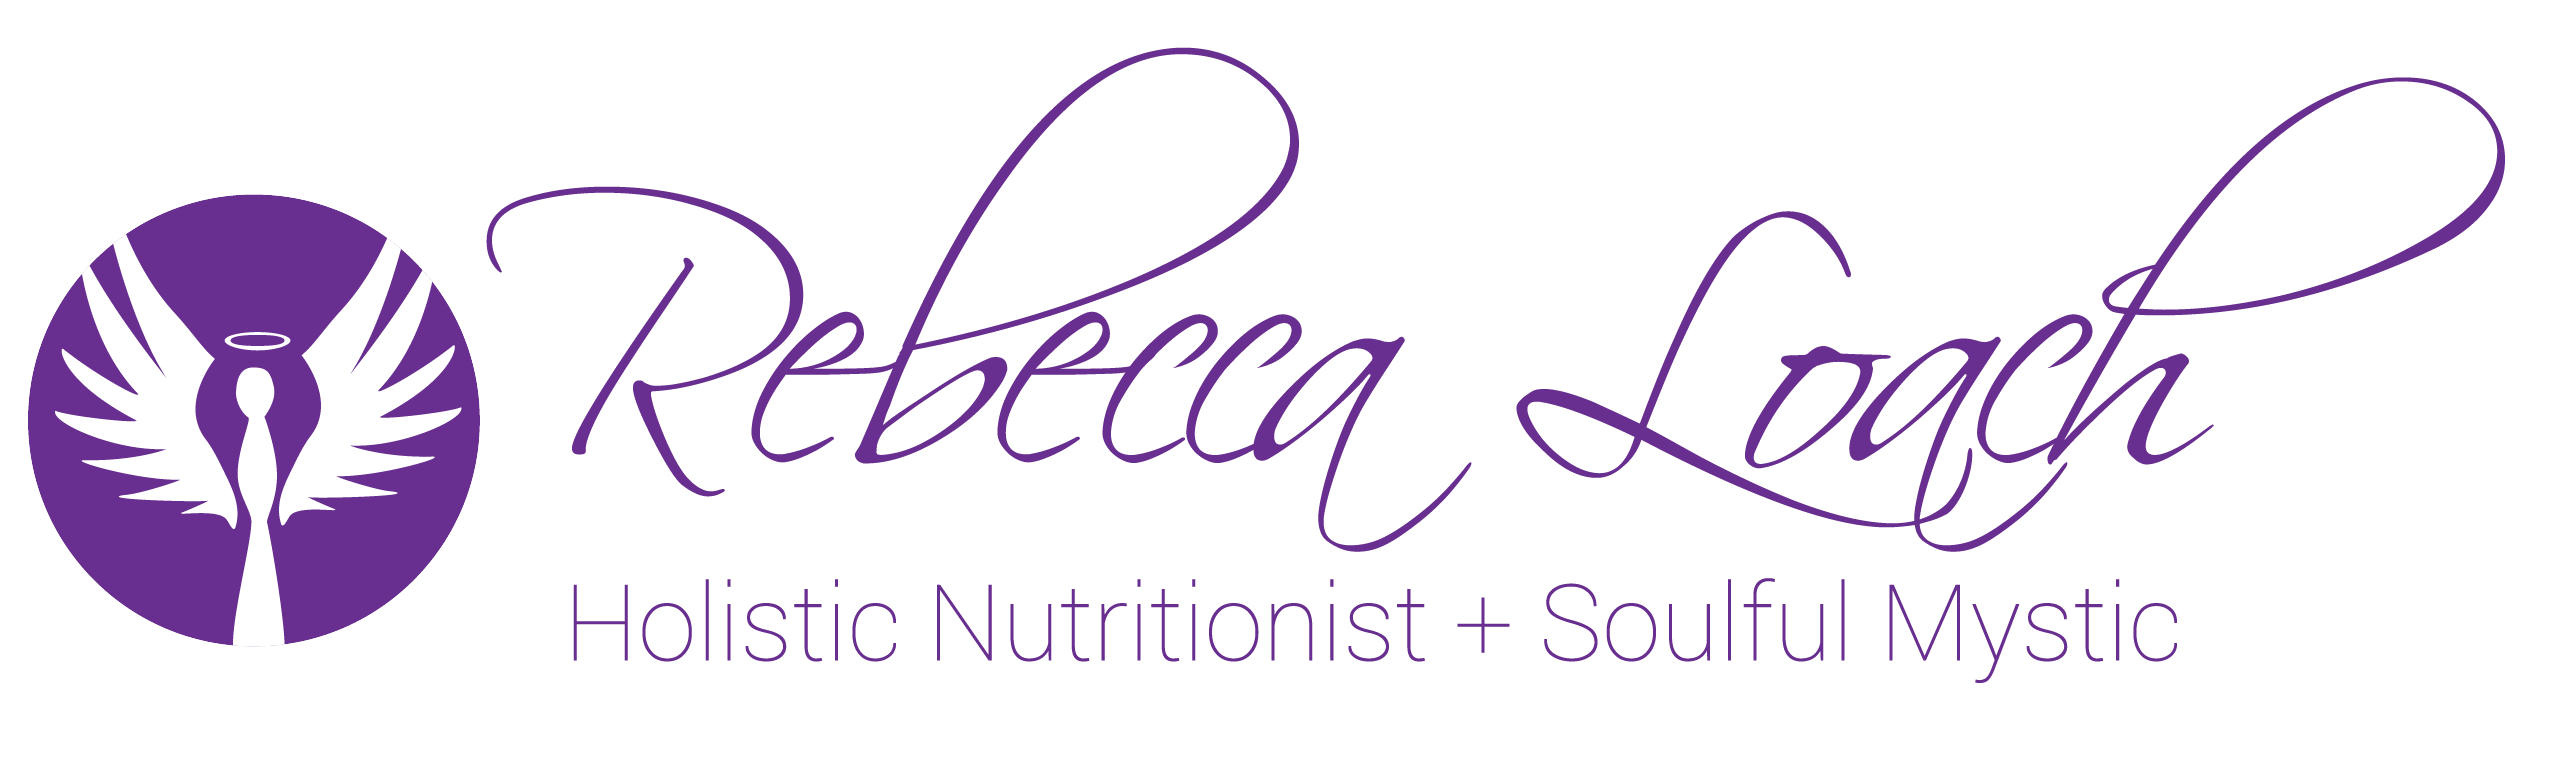 Rebecca Loach - Holisitic Nutritionist, Author + Soulful Mystic